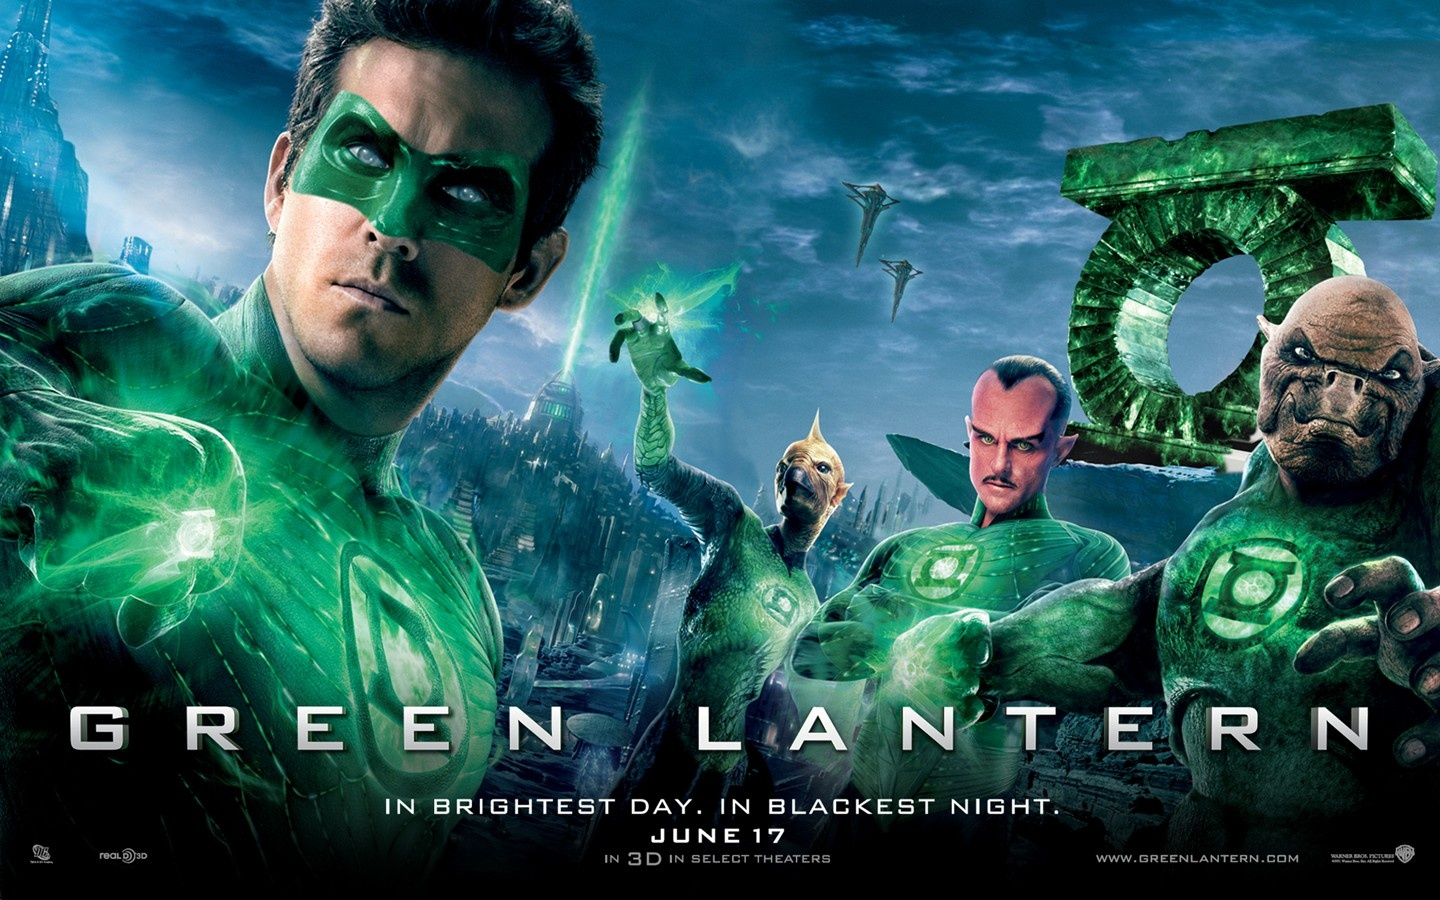 Why Does People Like or Hate Green Lantern